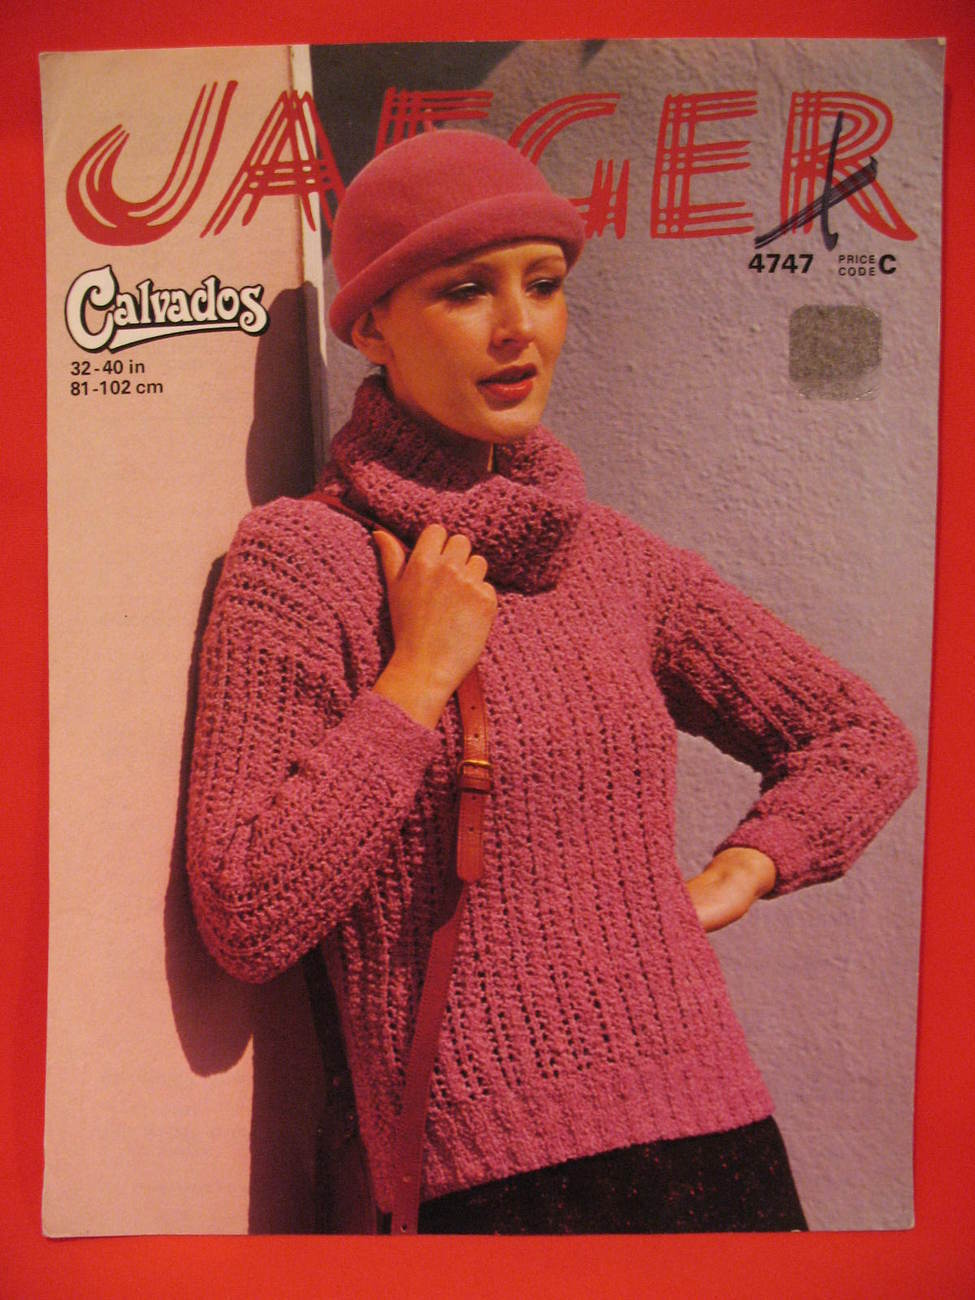 Jaeger knitting pattern 13 listings jaeger calvados pullover sweater knitting pattern ladies 299 bankloansurffo Images